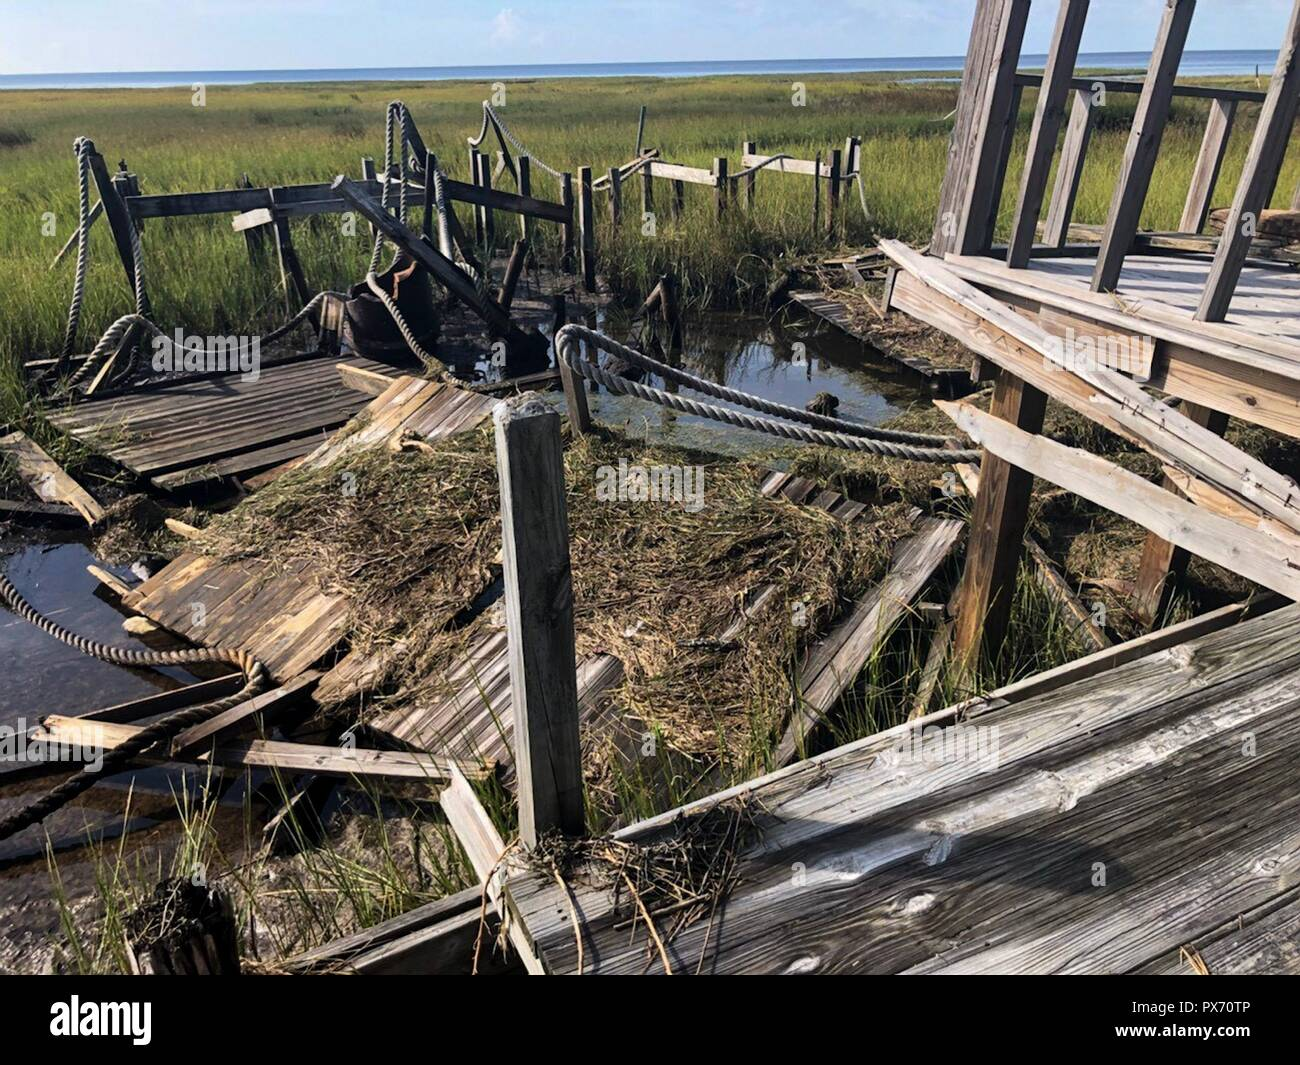 Catastrophic damage to a dock in the aftermath of Hurricane Michael as the storm left a swath of destruction across the Panhandle region of Florida area October 11, 2018 in Keaton Beach, Florida. The Category 4 monster storm left behind catastrophic damage along northwestern Florida. - Stock Image